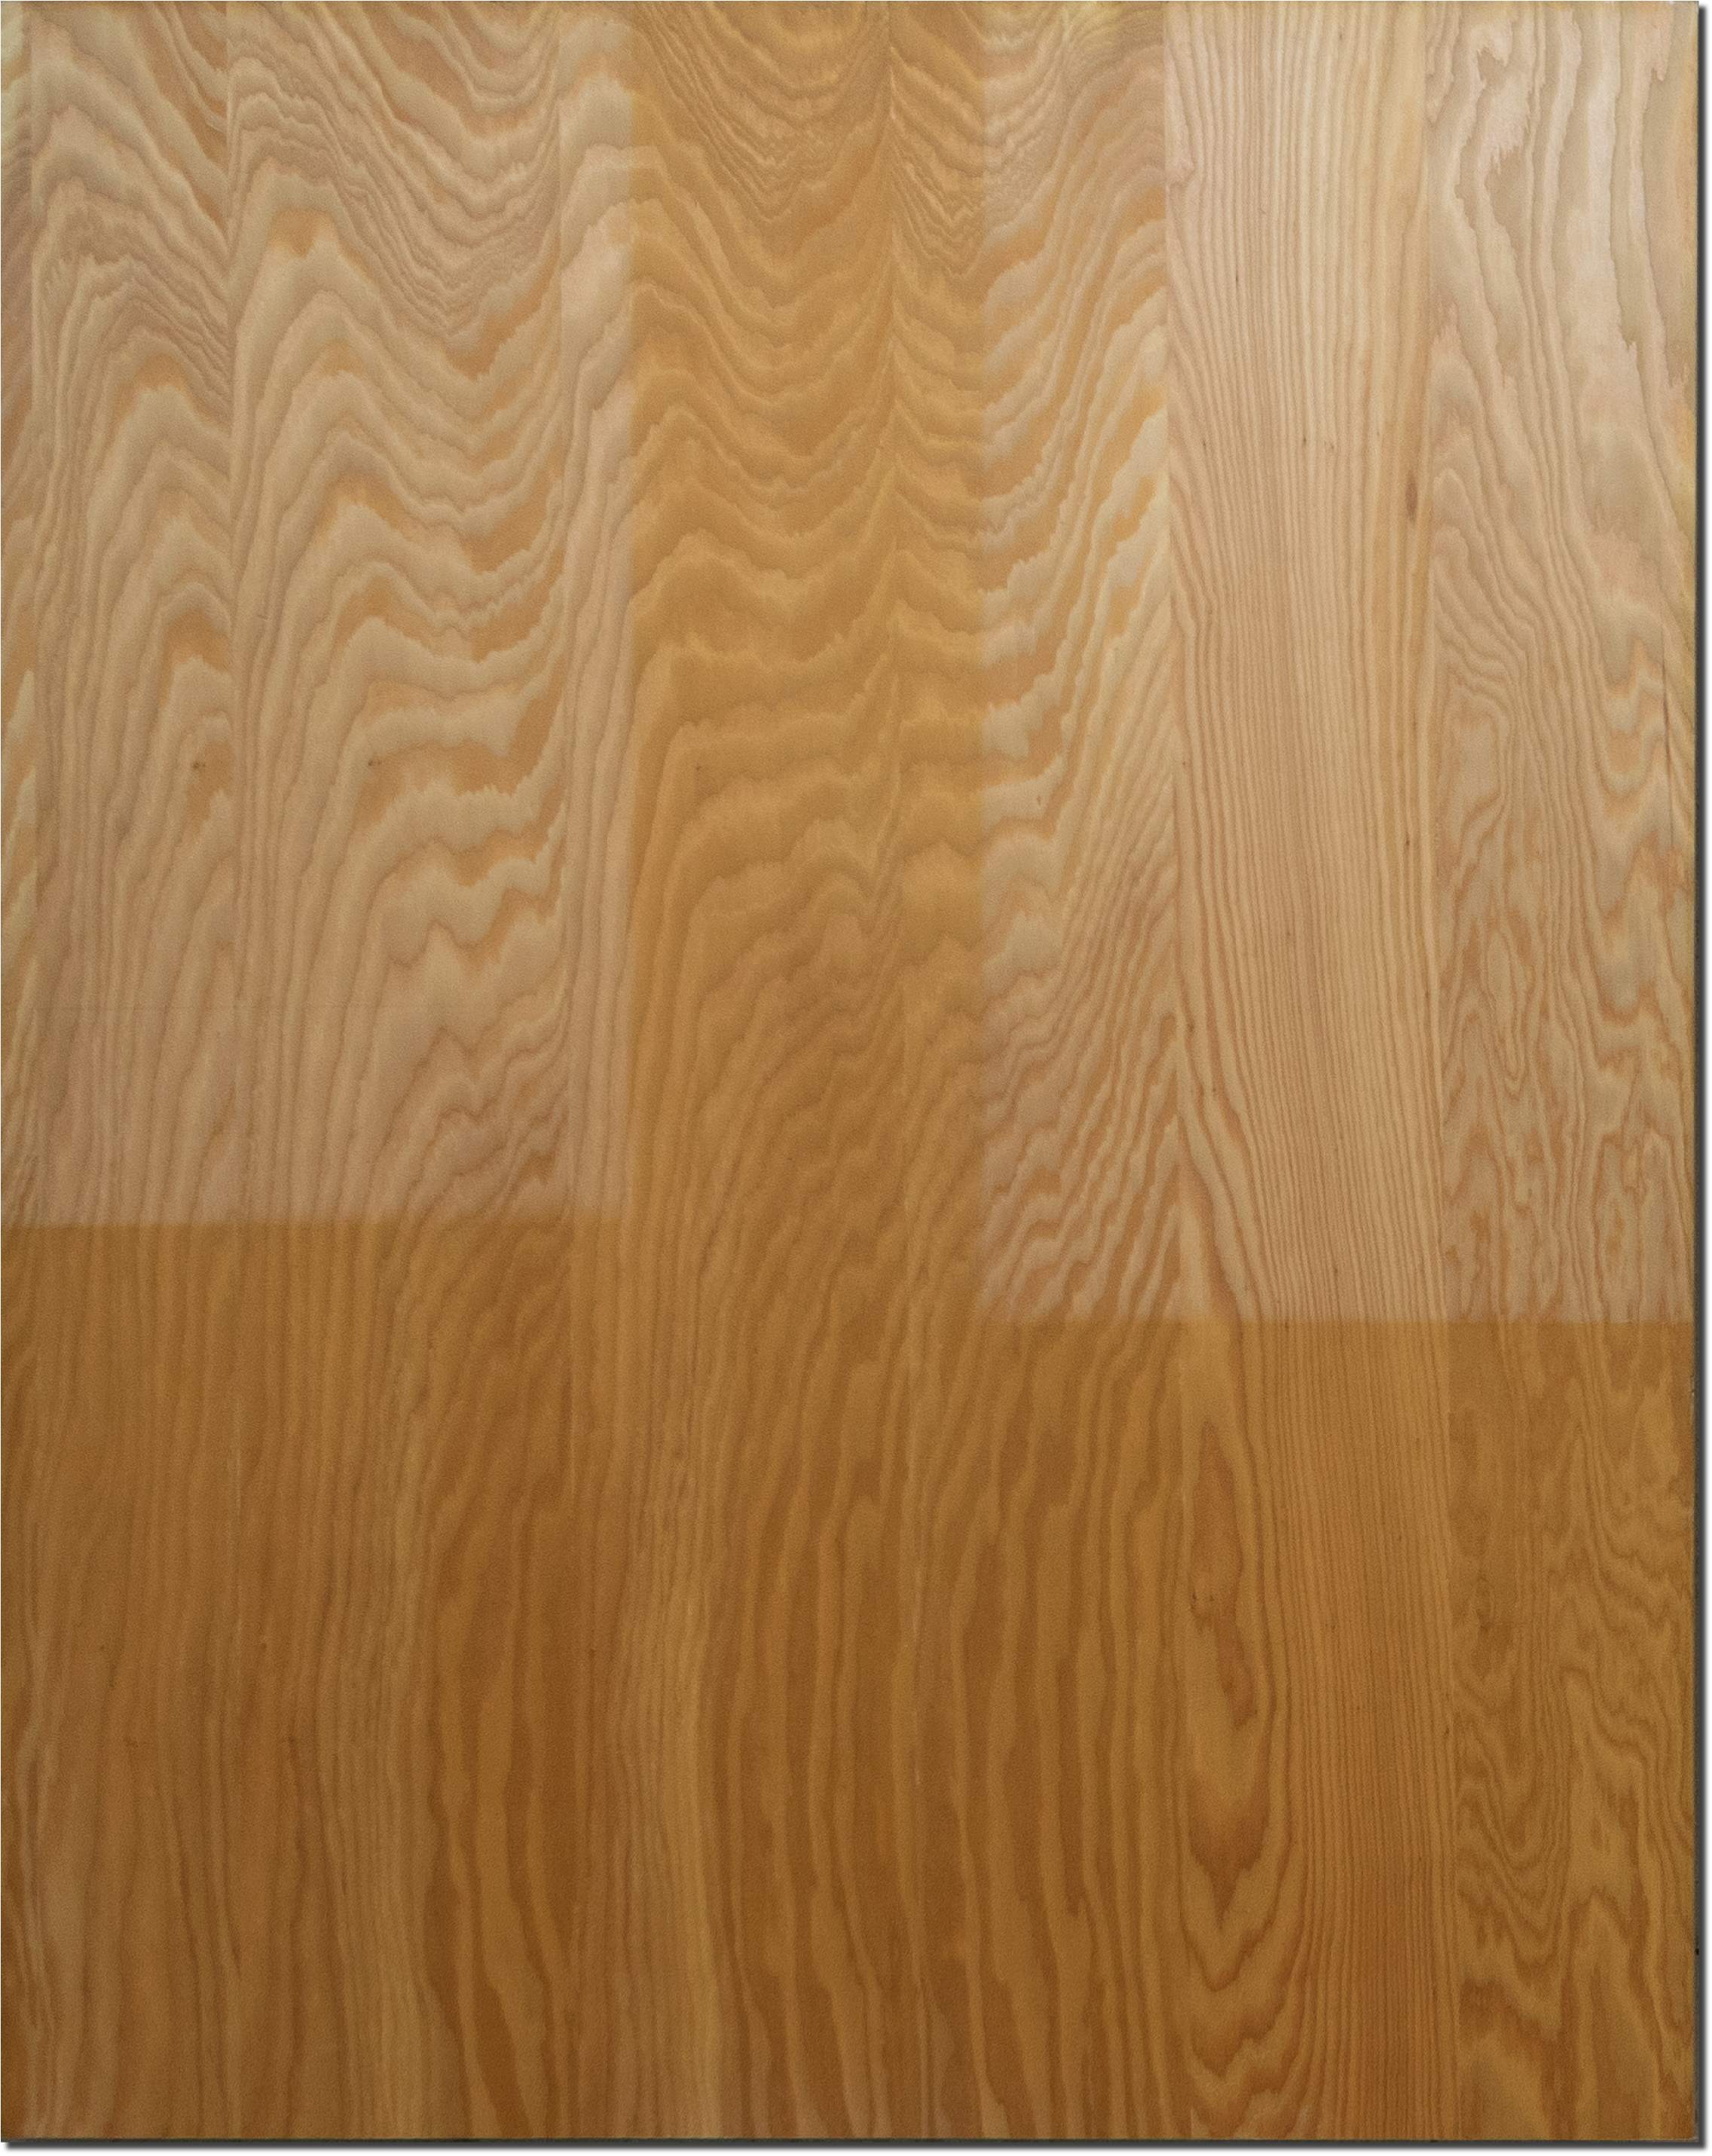 No Time for Time #1, larch wood panel, natural photographic development, 140cm x 110cm